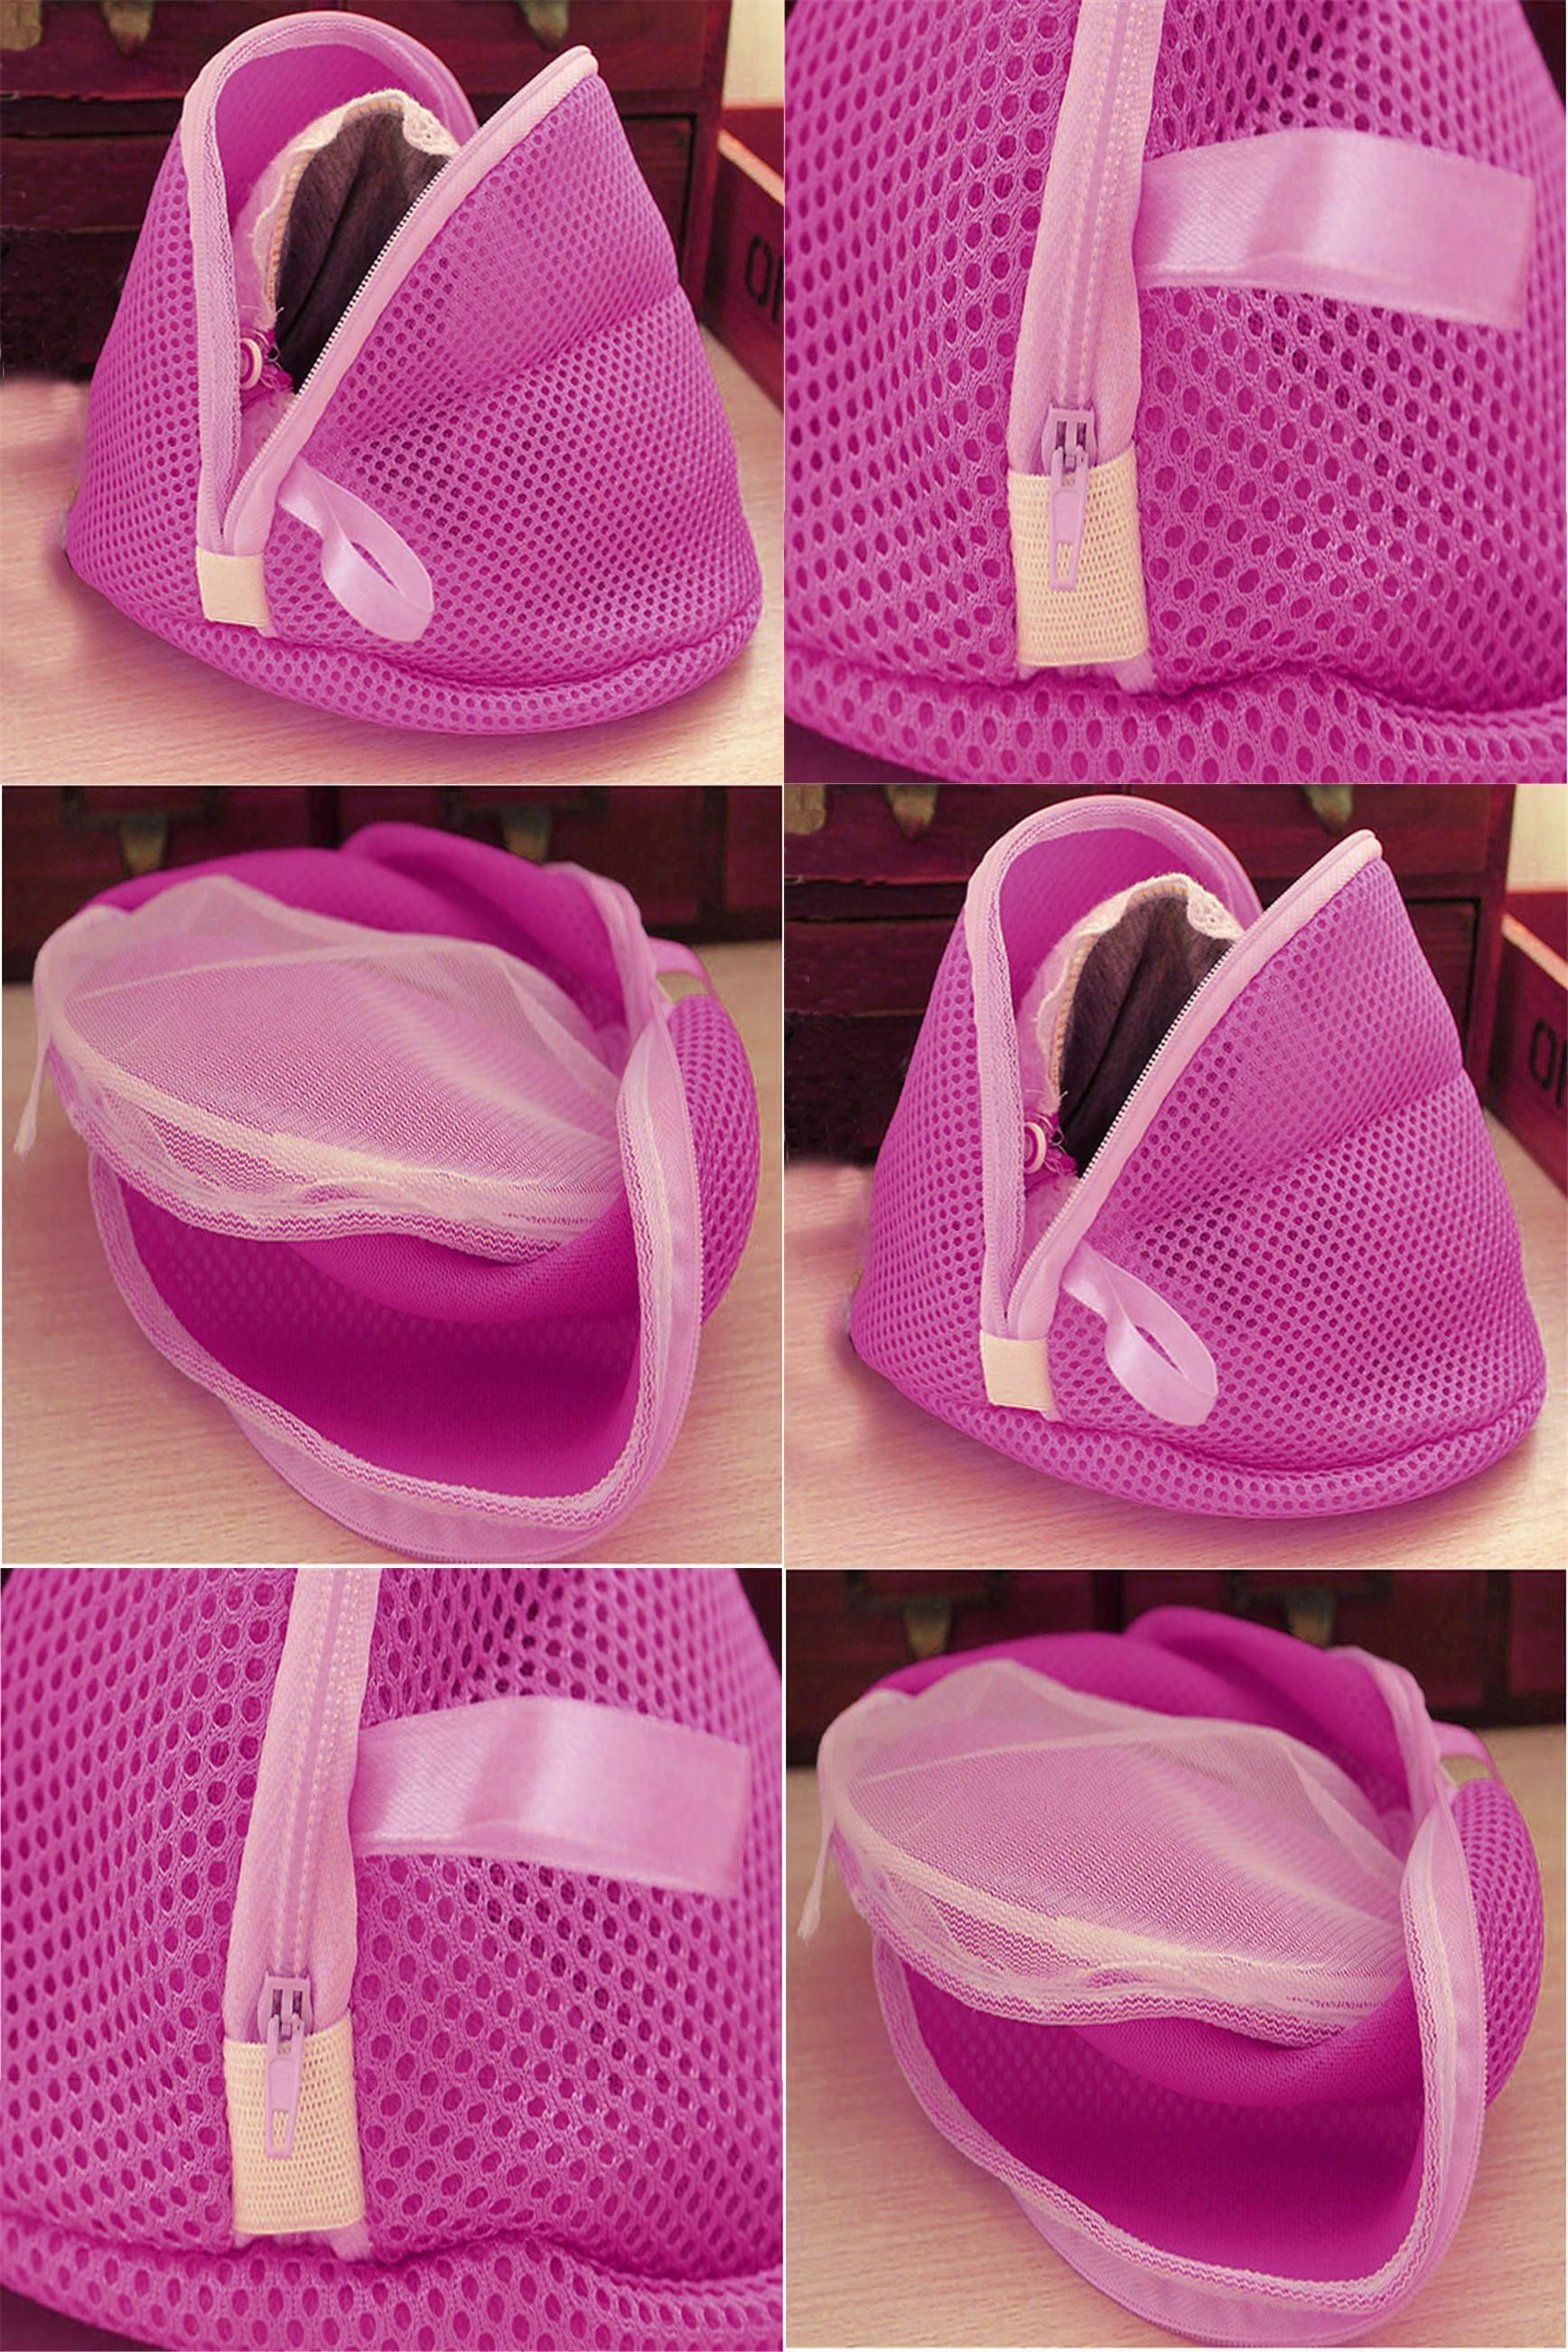 f63c8fc7a4f9  Visit to Buy  Women Clothing Bra Laundry Basket Bag Lingerie Washing  Hosiery Saver Protect